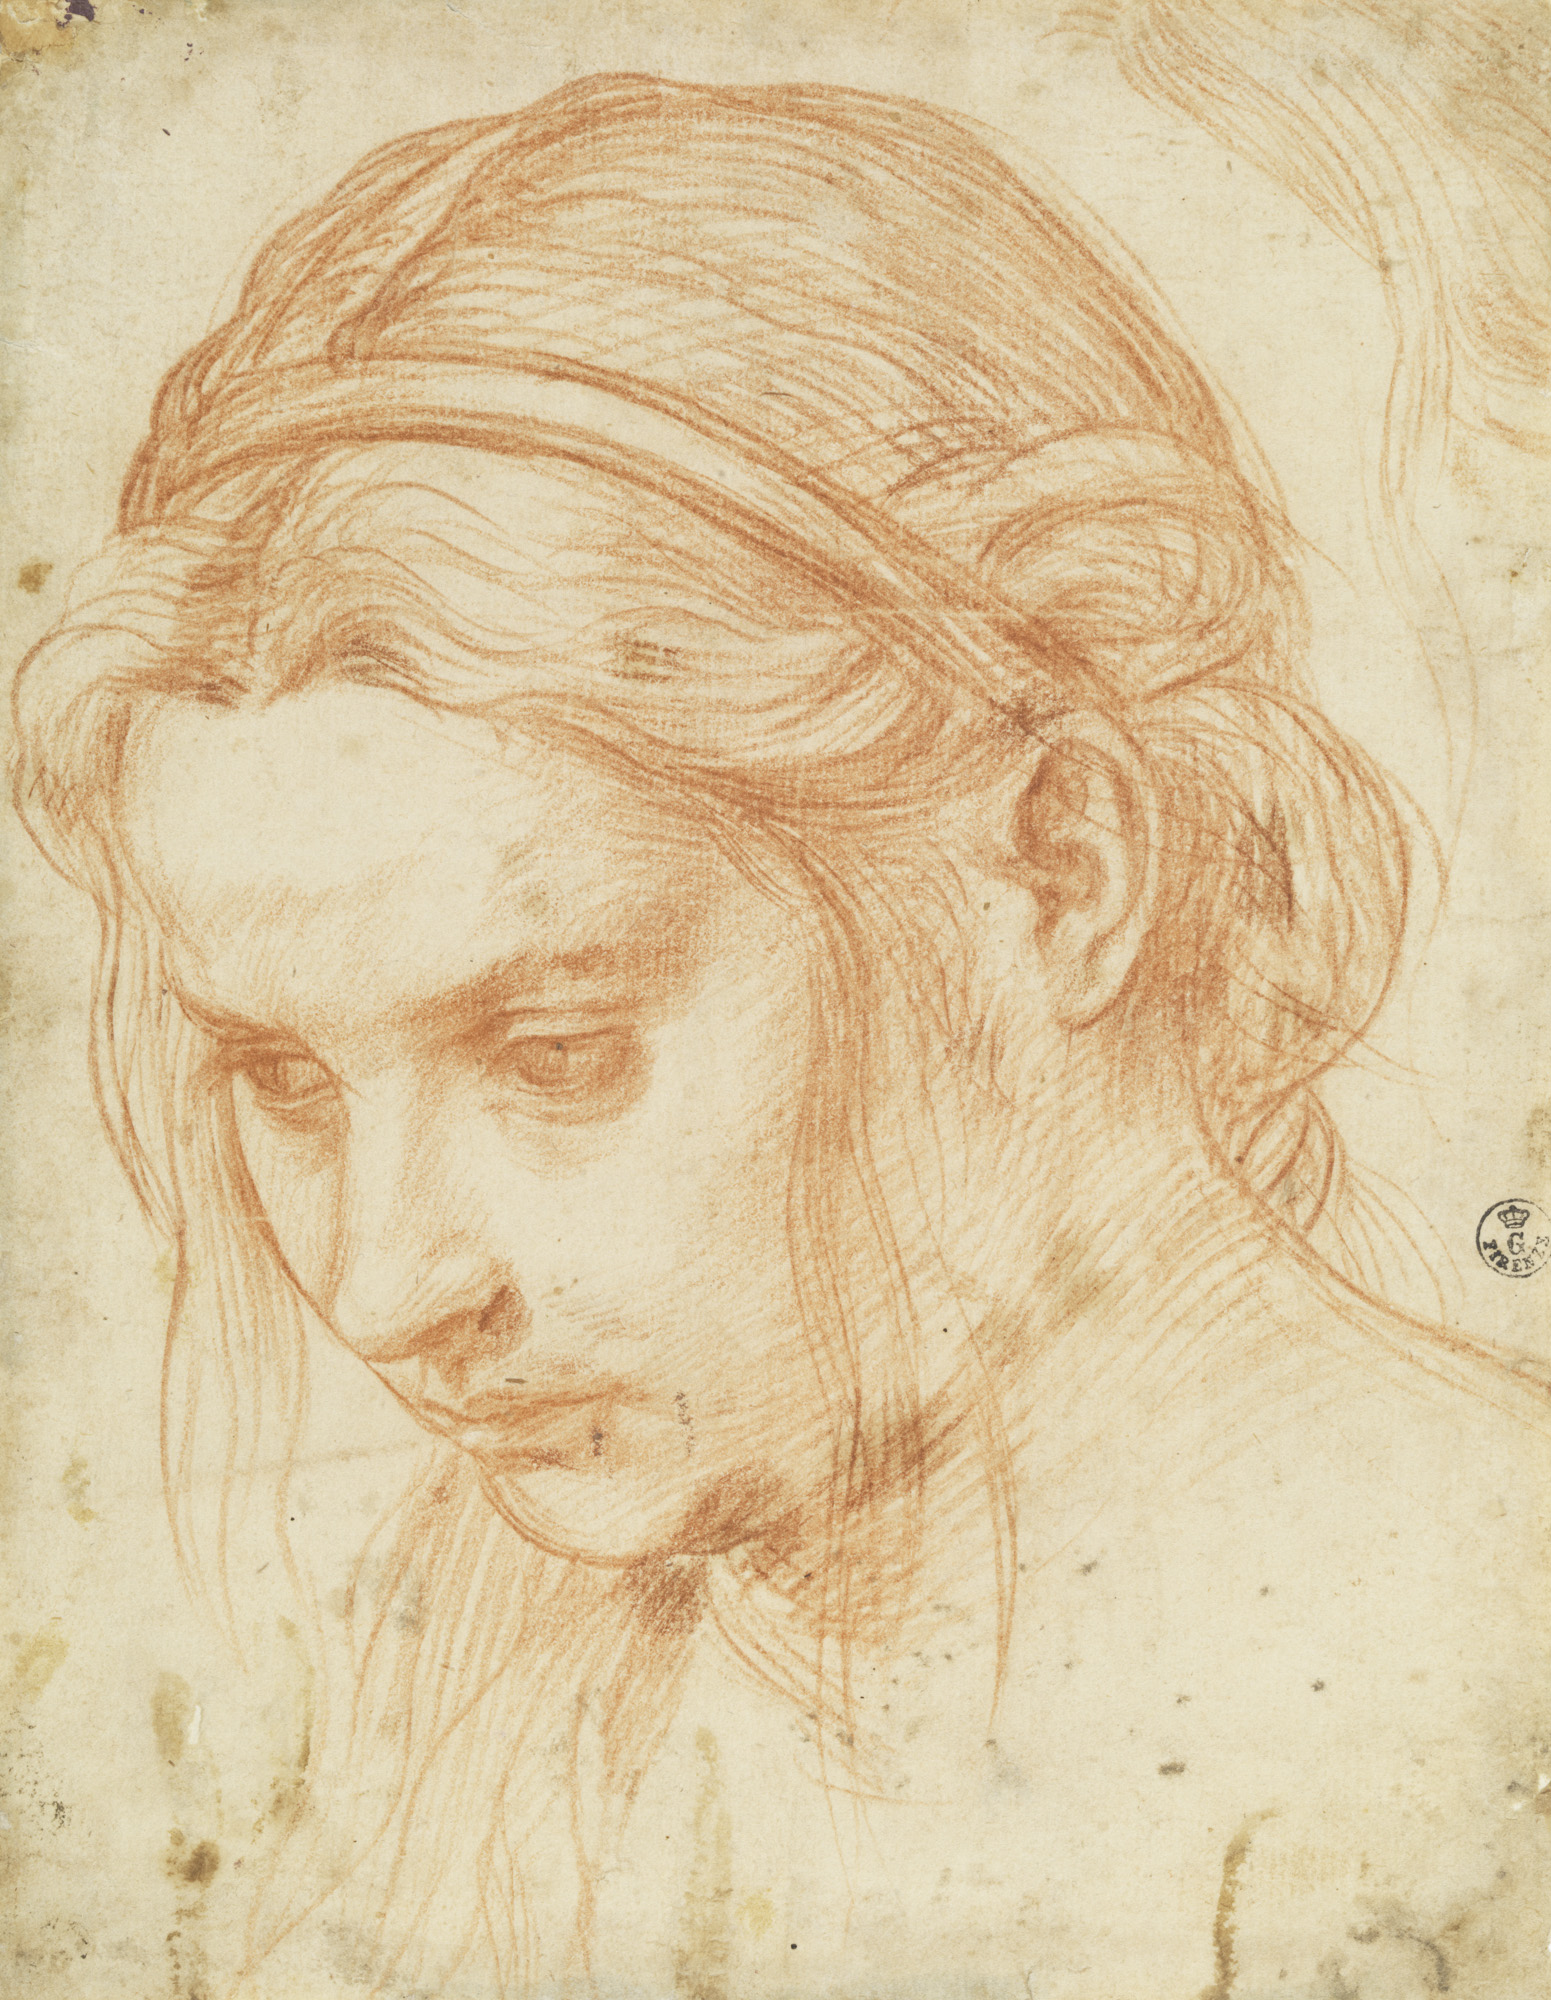 Andrea del Sarto, Study of the Head of a Young Woman, ca. 1523, red chalk, 8 9/1